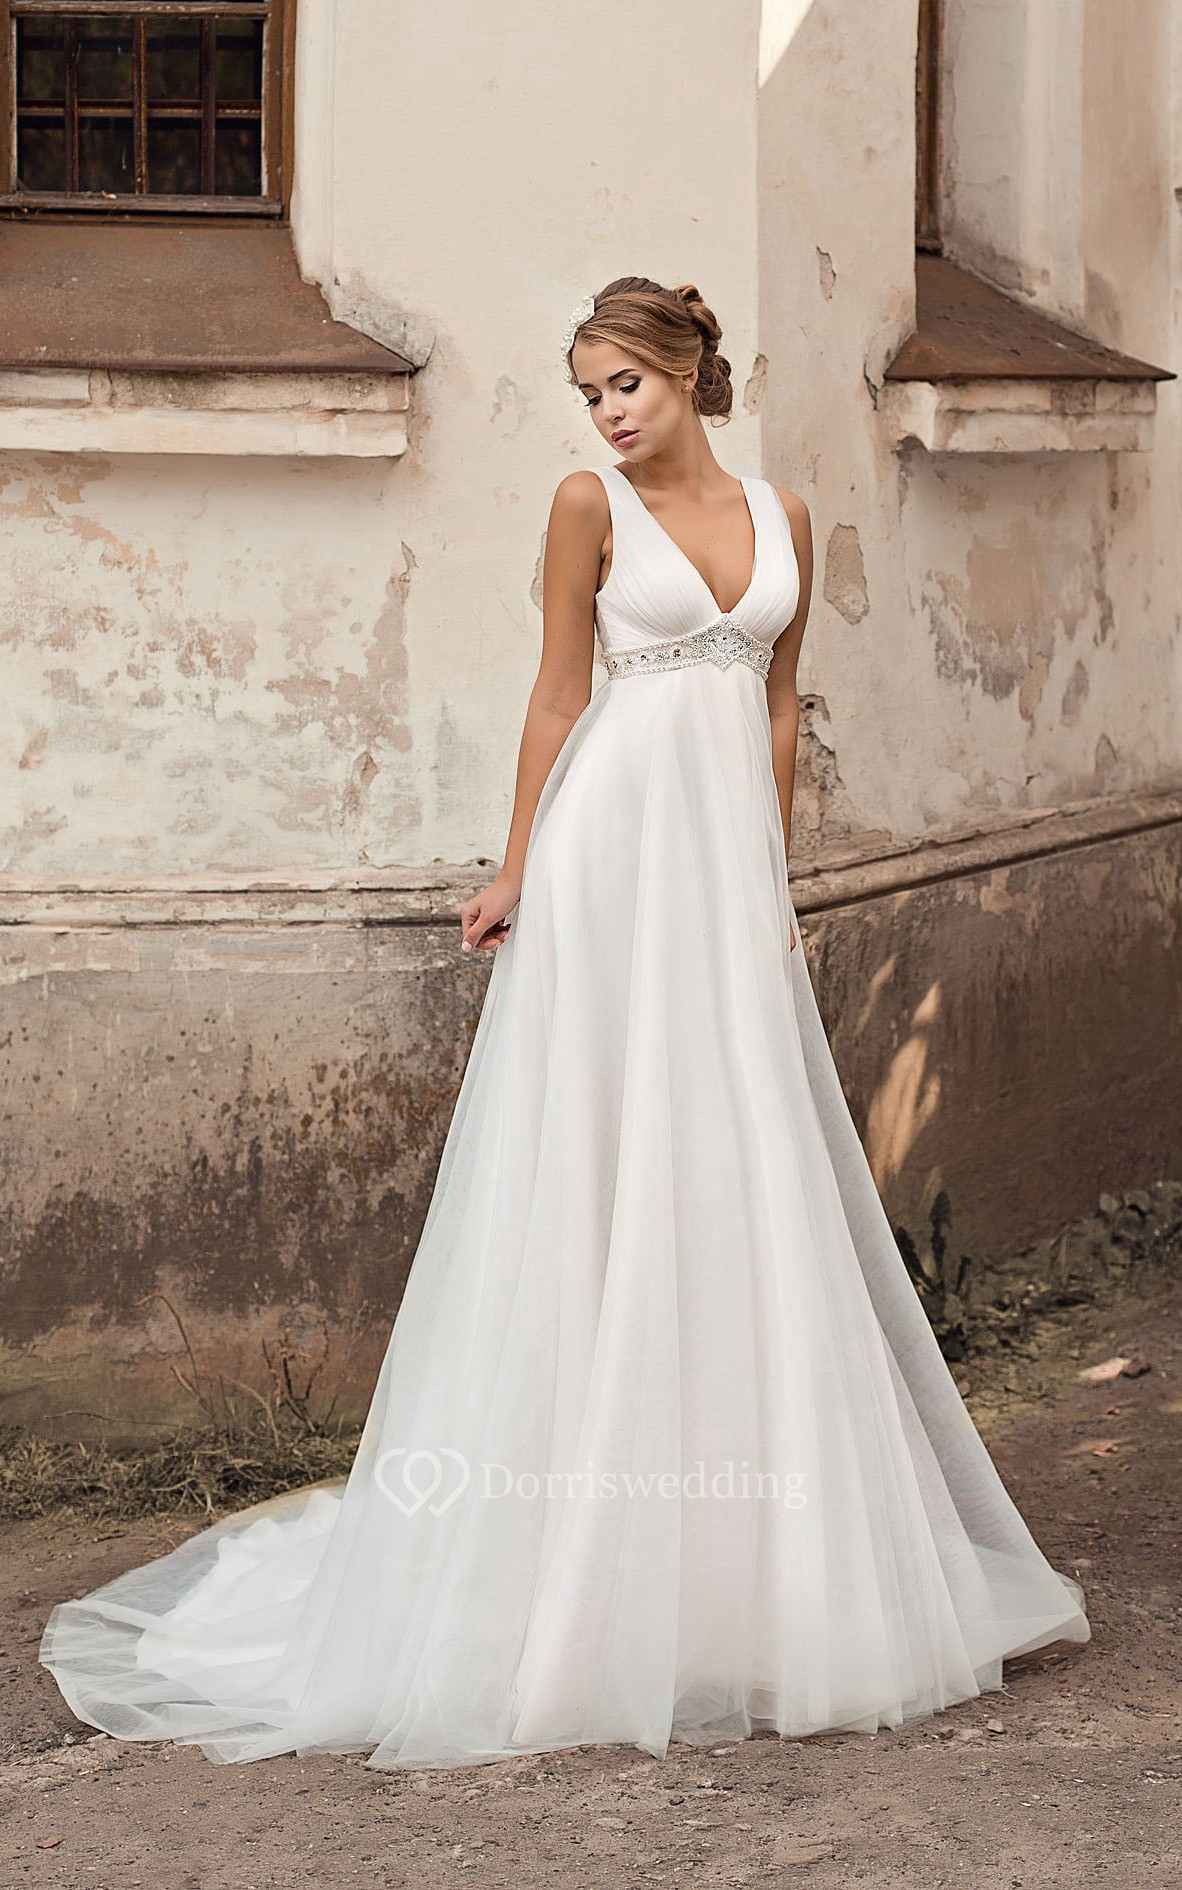 Vneck Empire Aline Chiffon Wedding Dress With Beading. Off Shoulder Wedding Gown Singapore. Designer Wedding Dresses Leeds. Cheap Wedding Dresses Chattanooga Tn. Princess Diana Wedding Dress Exhibit Schedule. Ivory Wedding Dress On Pale Skin. Summer Wedding Dresses Guest 2015. Romantic Whimsical Wedding Dresses. Simple Wedding Dresses Lebanon